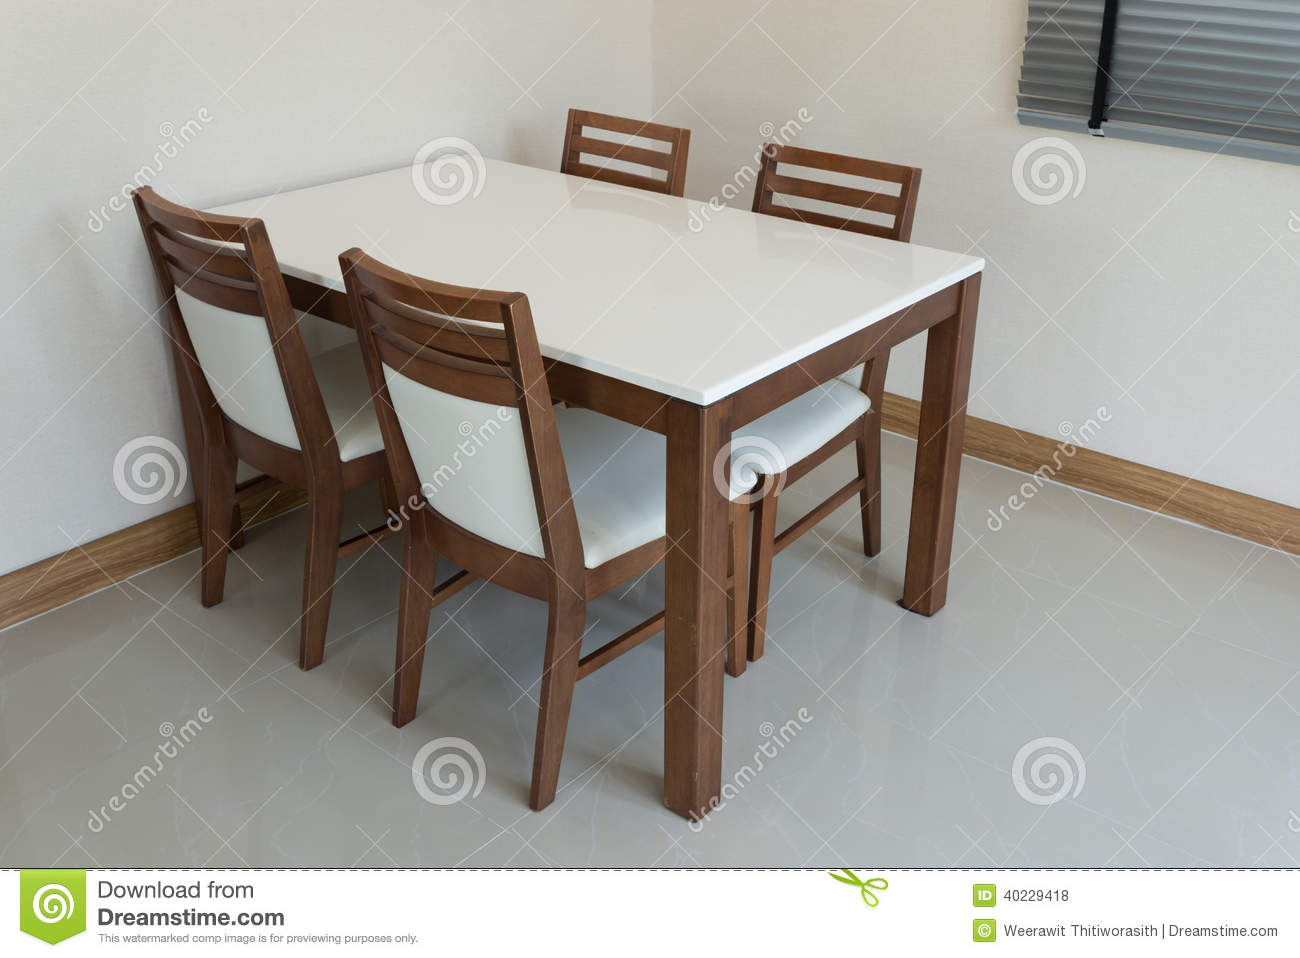 Table de salle manger en bois photo stock image 40229418 for Table a manger en bois